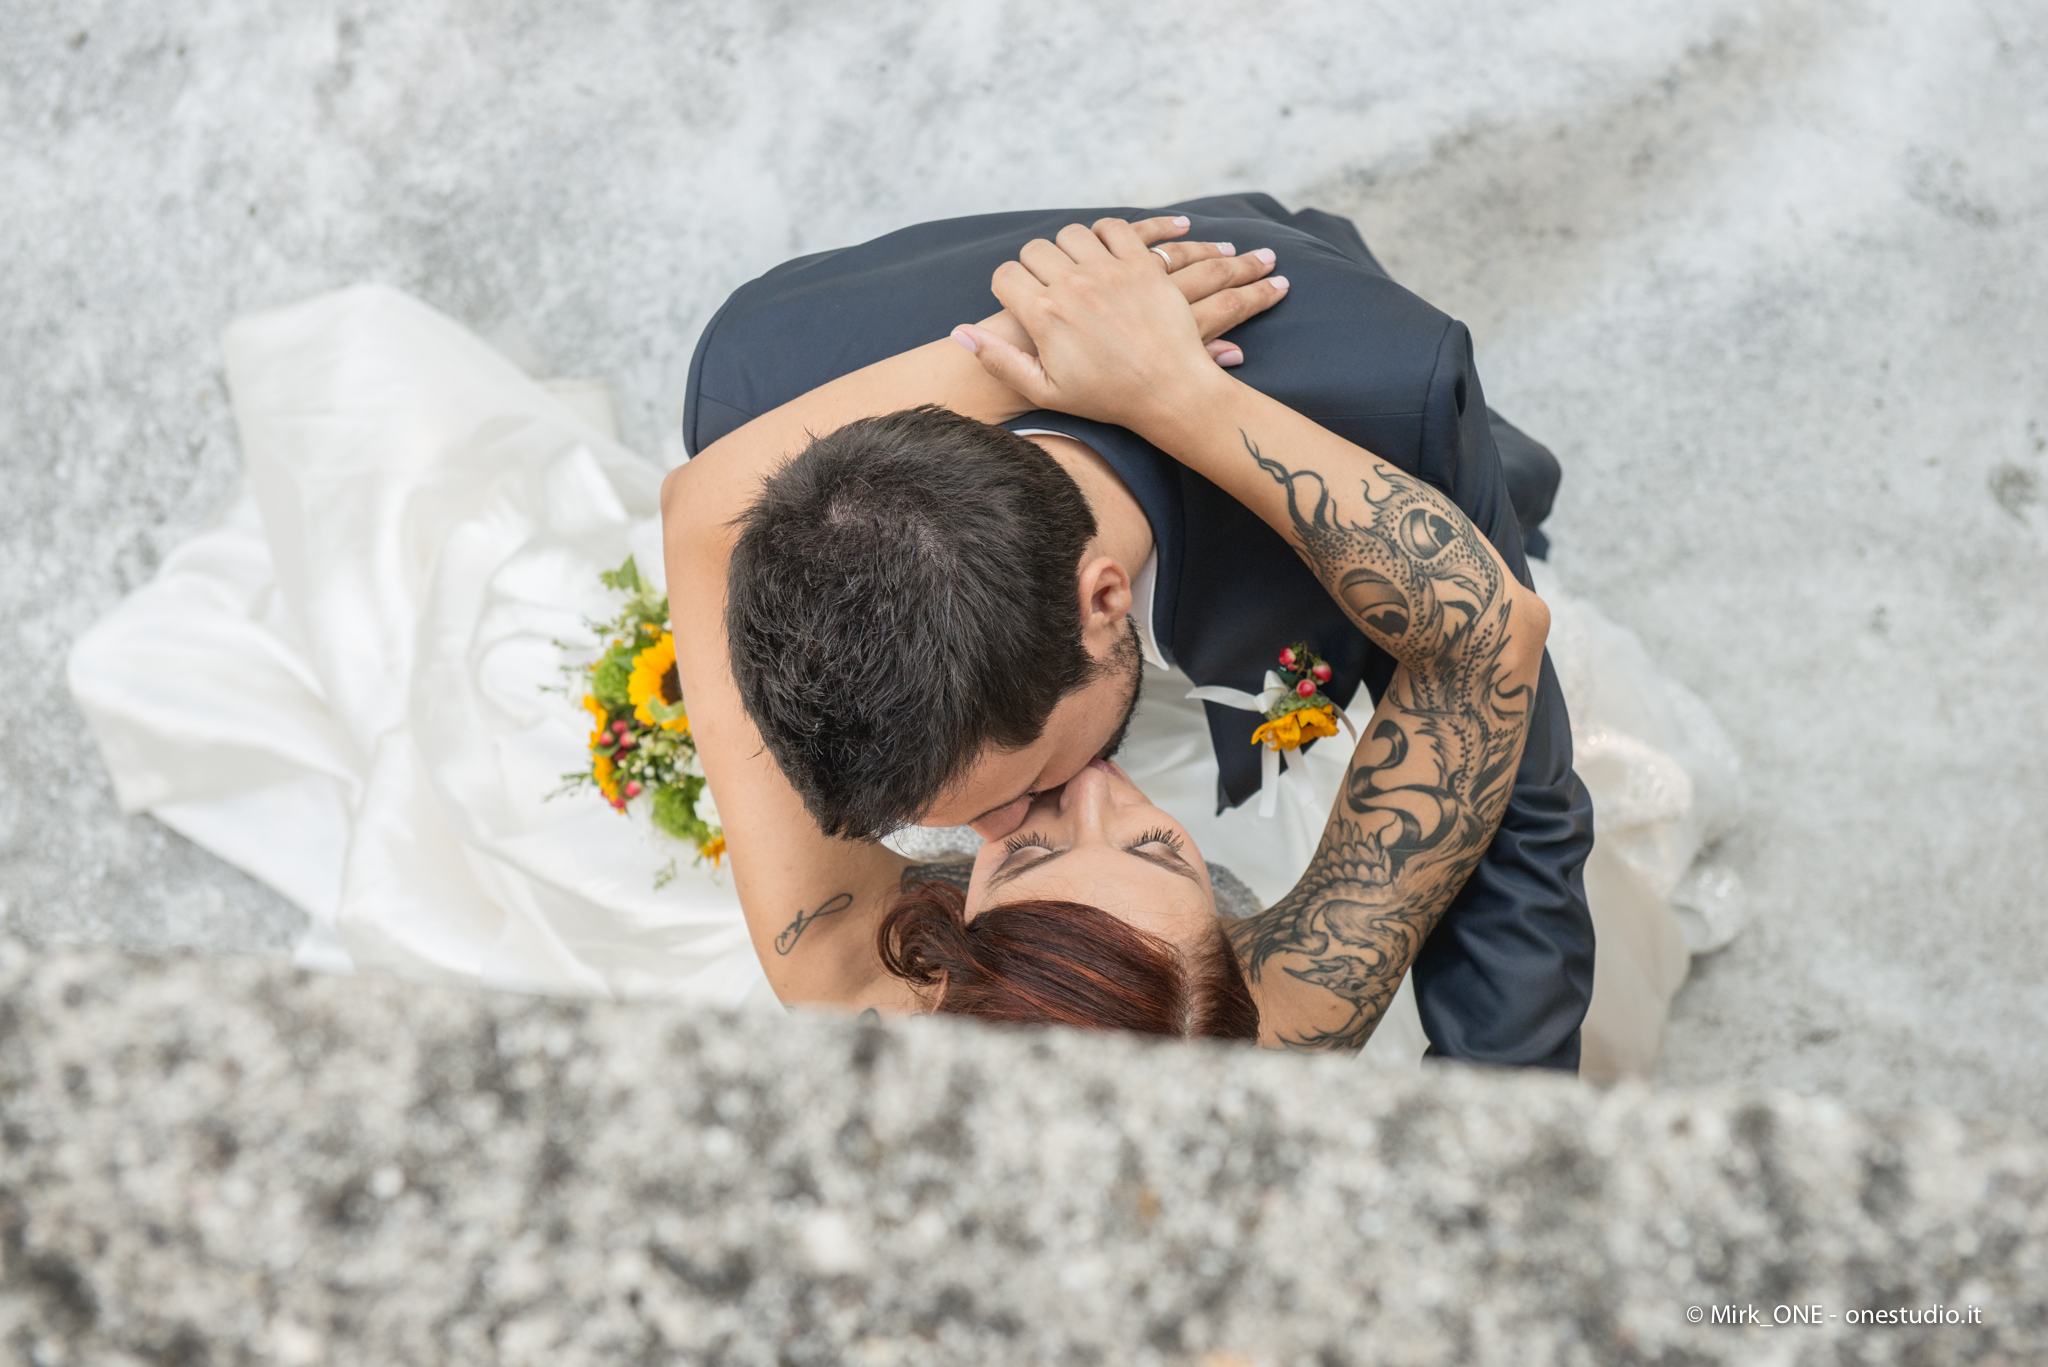 http://lnx.mirkone.it/wp-content/uploads/2015/07/mirk_ONE-fotografo-matrimonio-00816.jpg